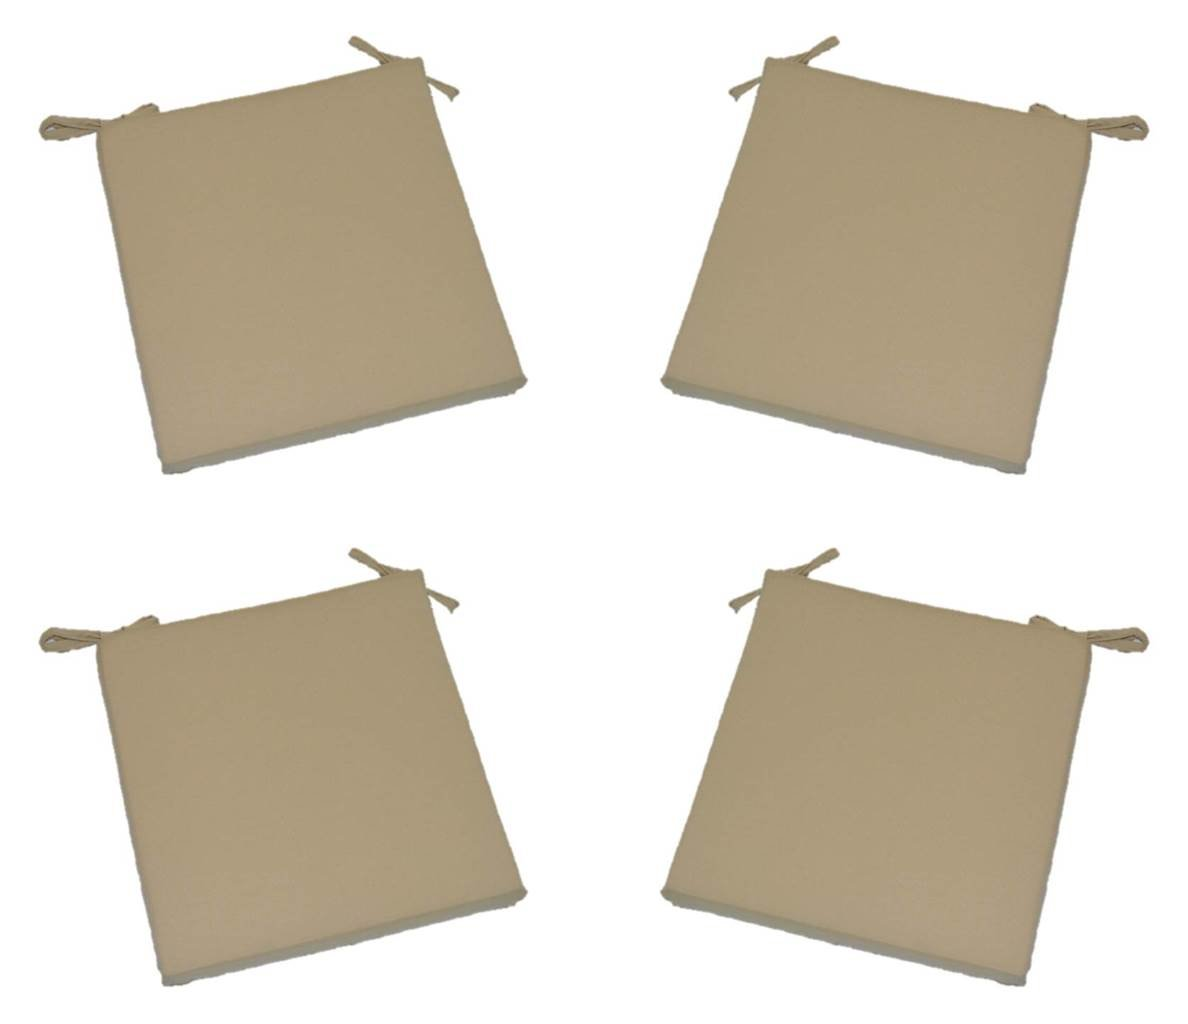 Set of 4 – Universal 2 Thick Foam Seat Cushion with Ties for Dining Patio Chair – Light Tan Khaki Fabric – Choose Size 16 x 16